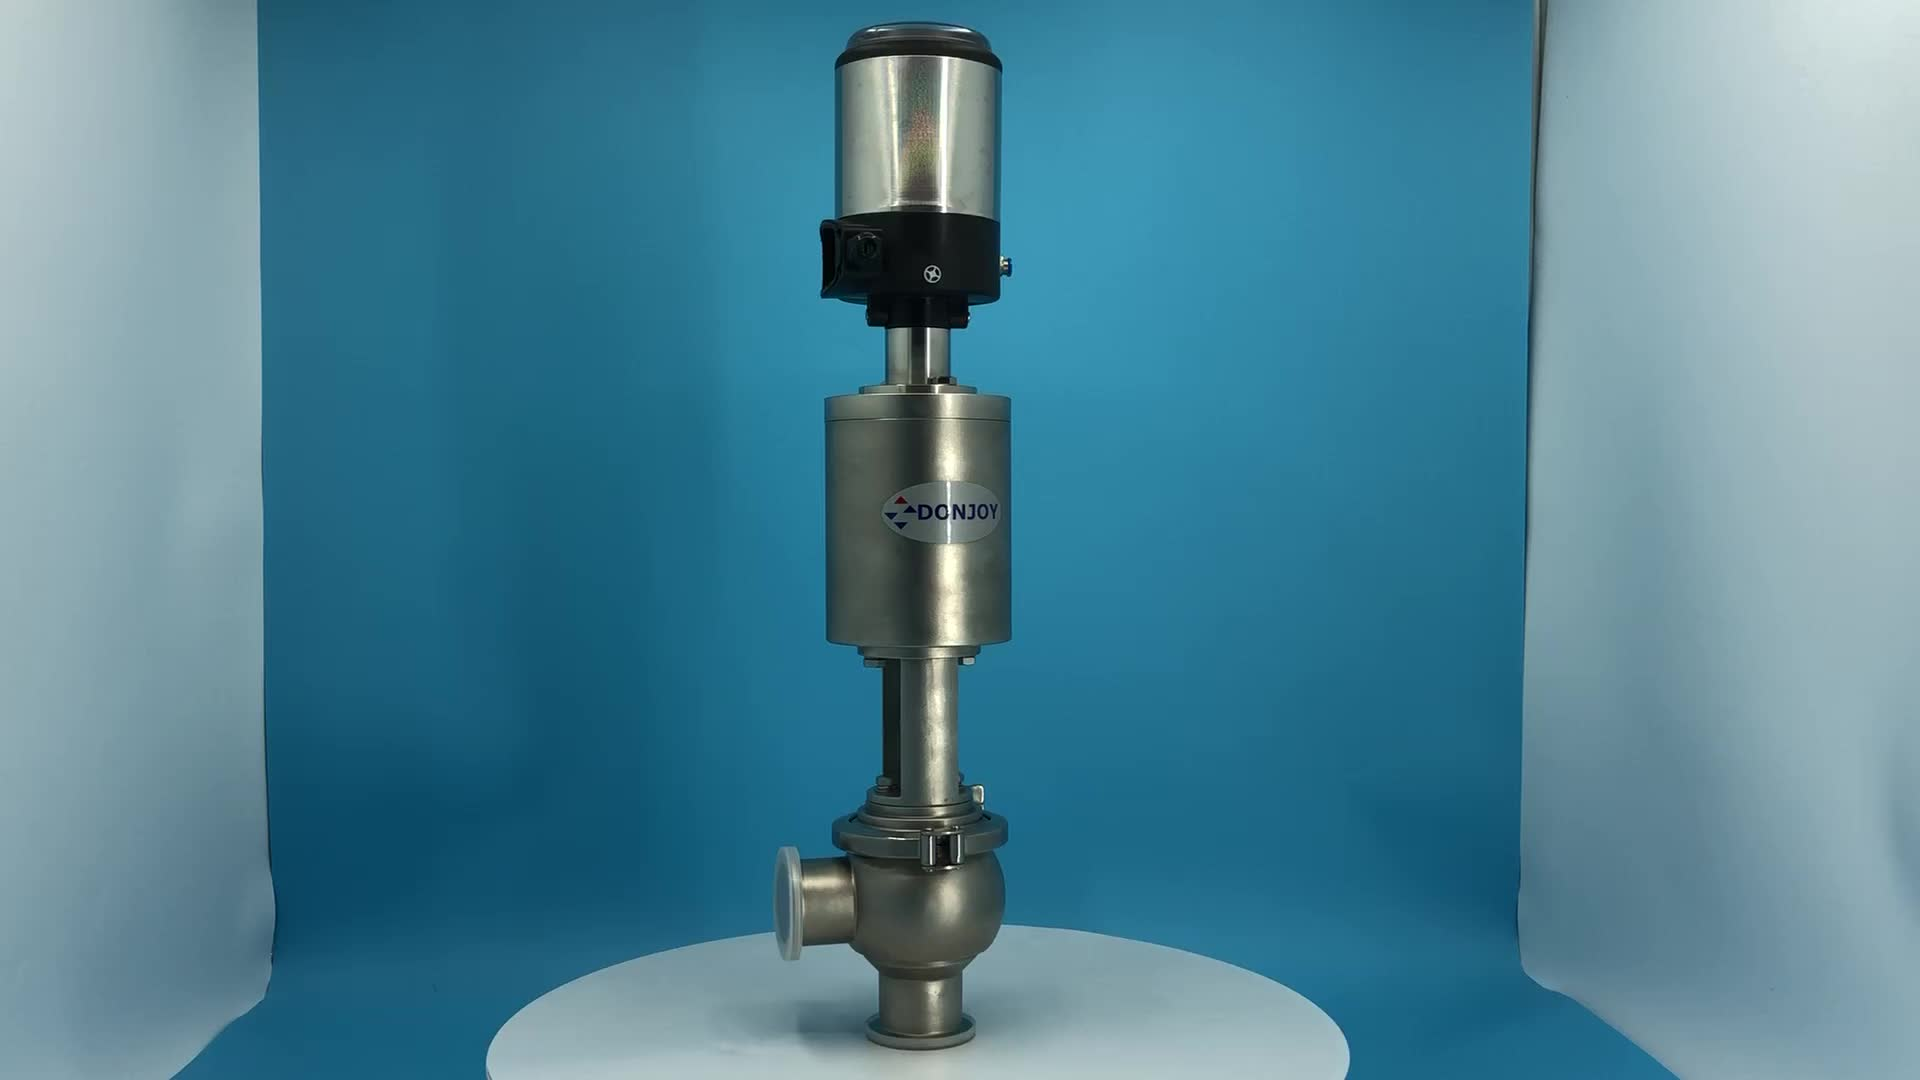 DONJOY high quality hygienic pneumatic  divert seat valve with control unit